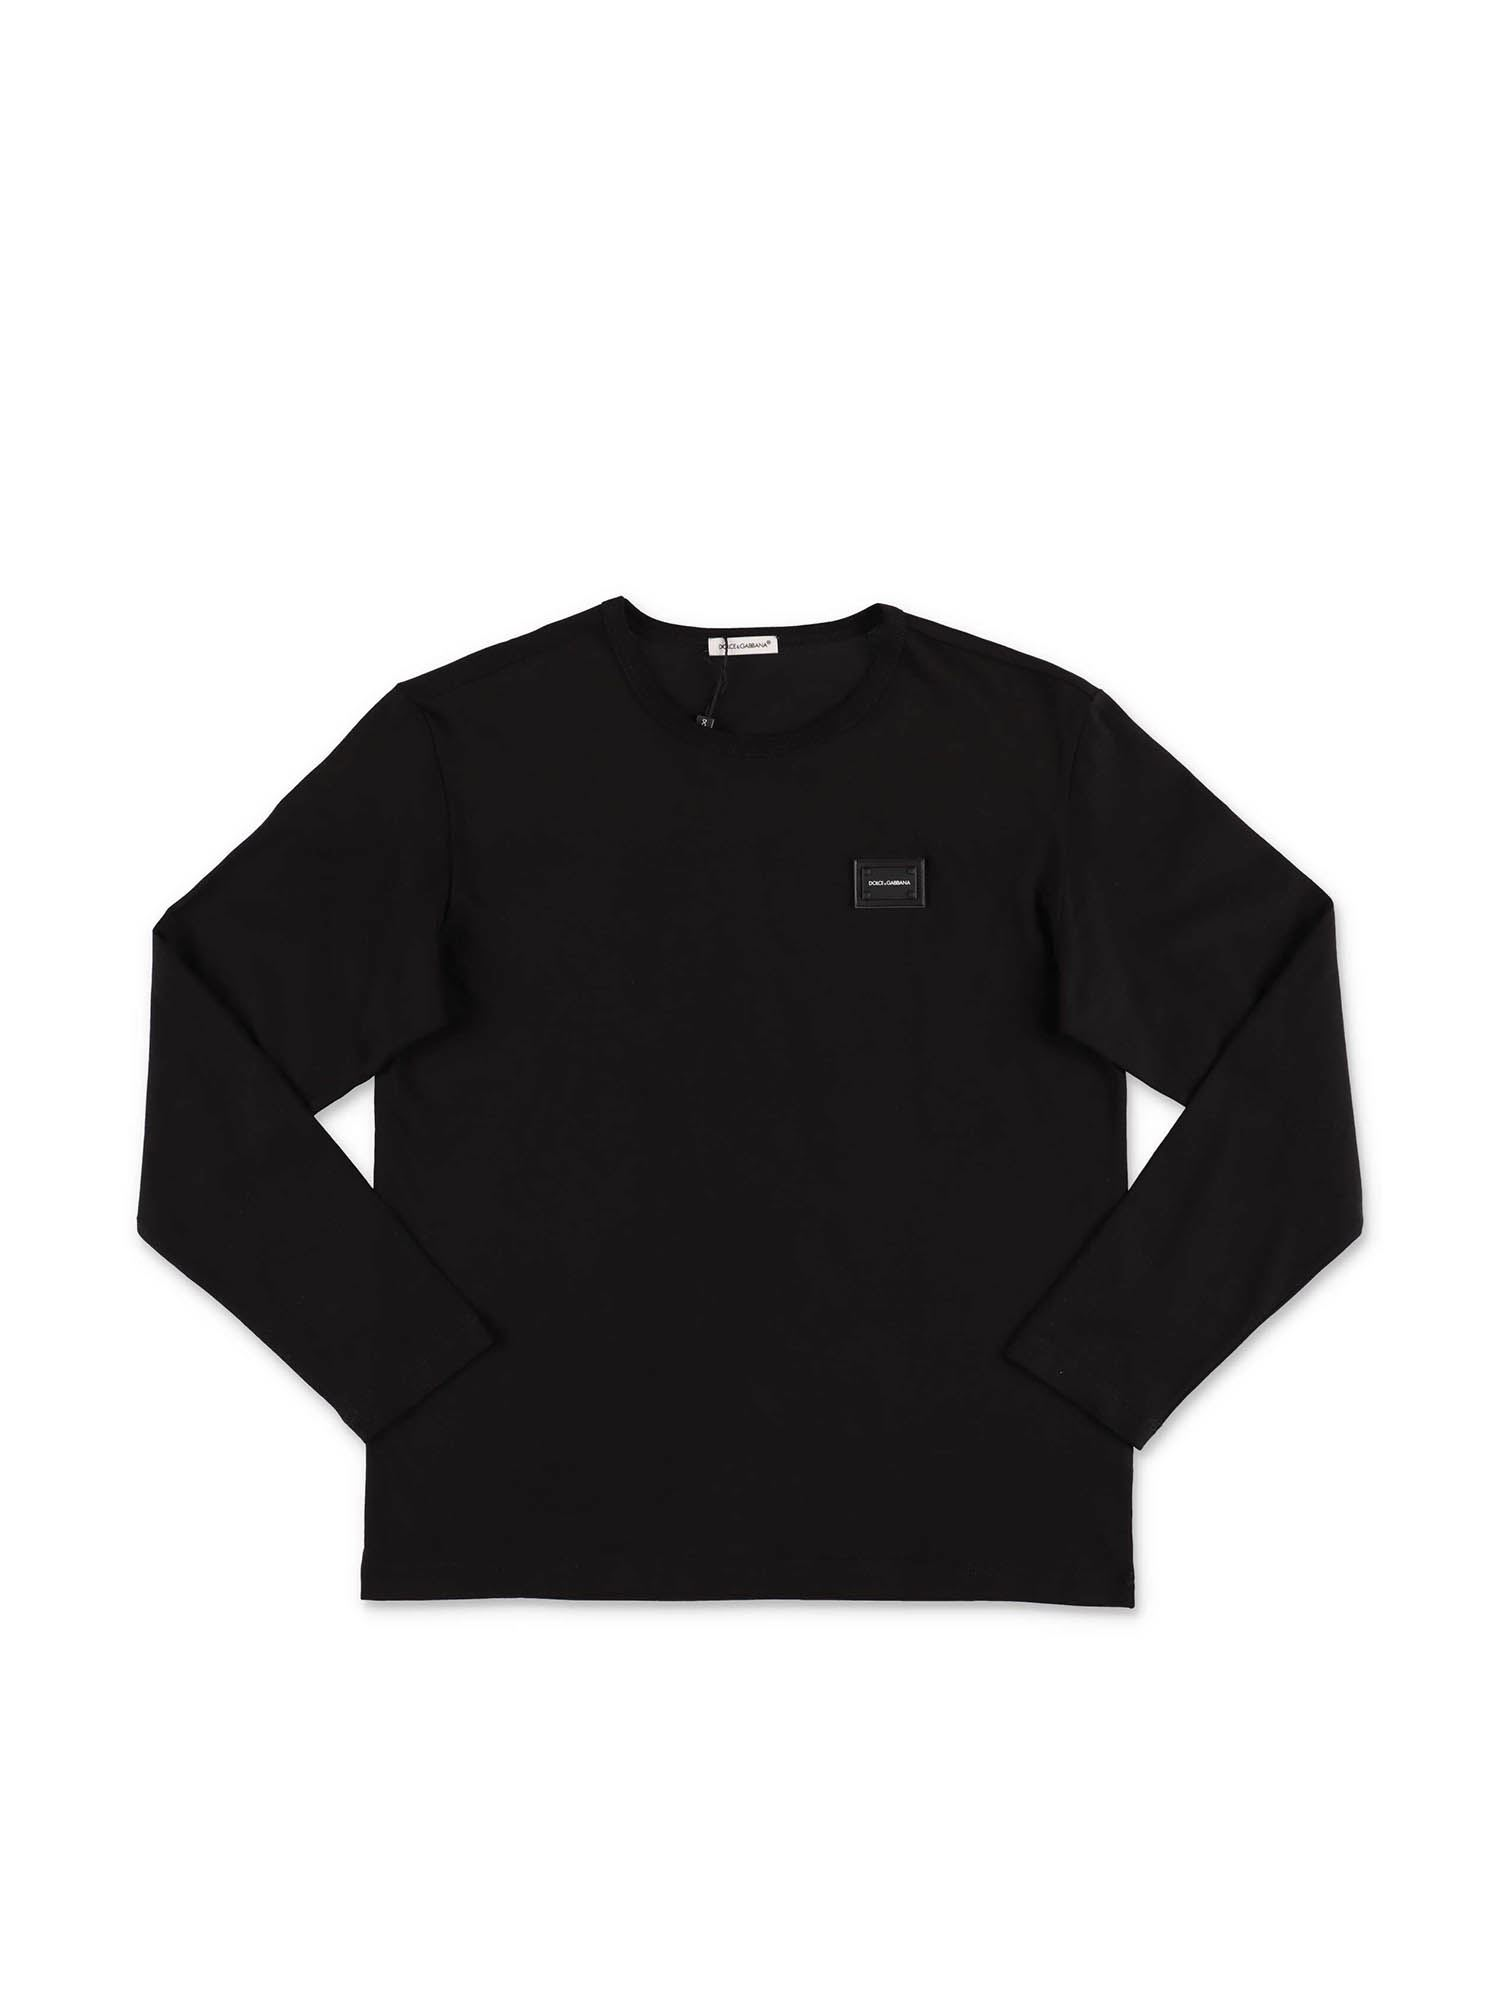 Dolce & Gabbana Jr BLACK LONG SLEEVE T-SHIRT